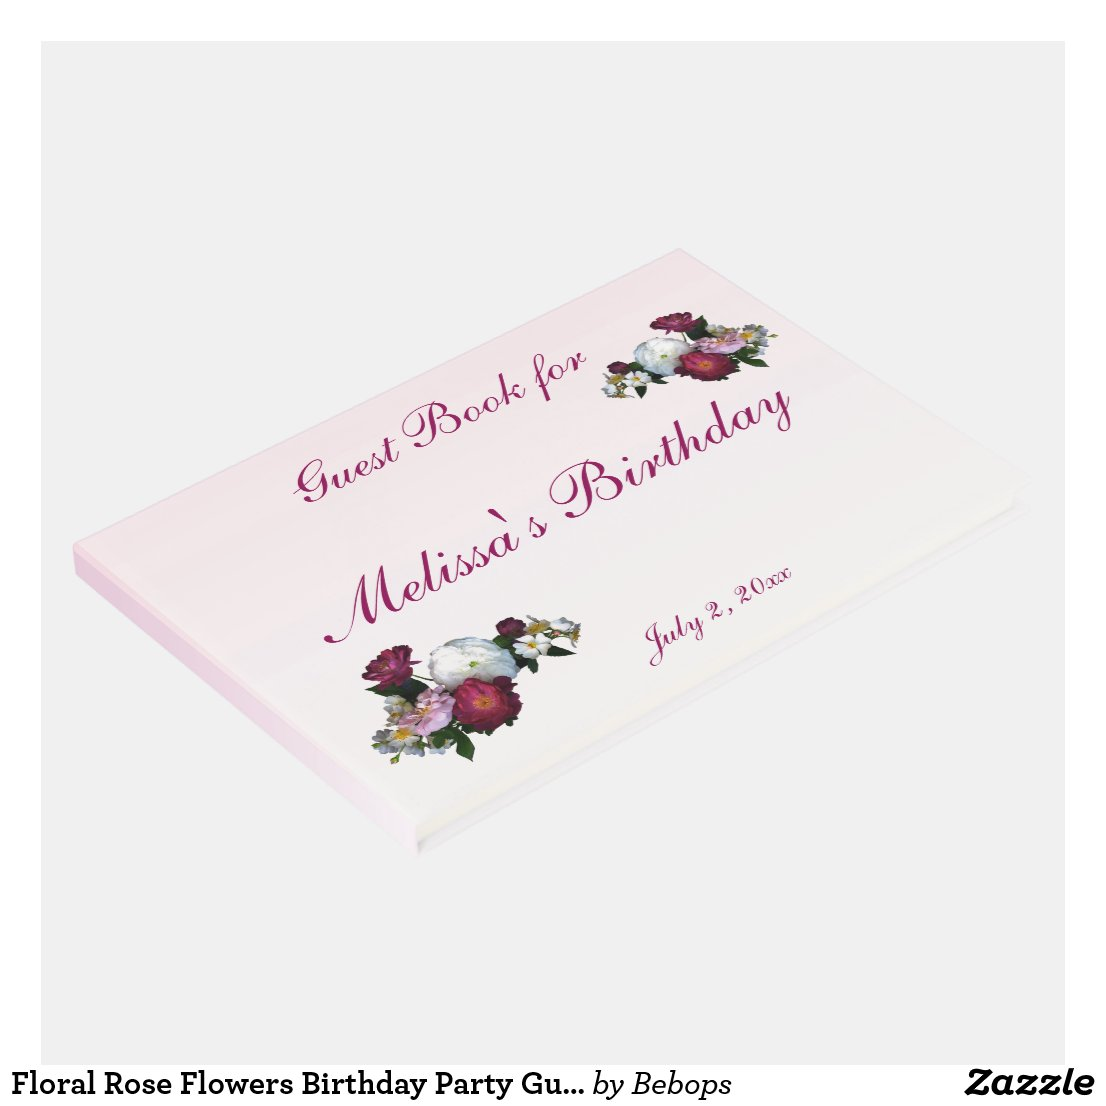 Floral Rose Flowers Birthday Party Guest Book